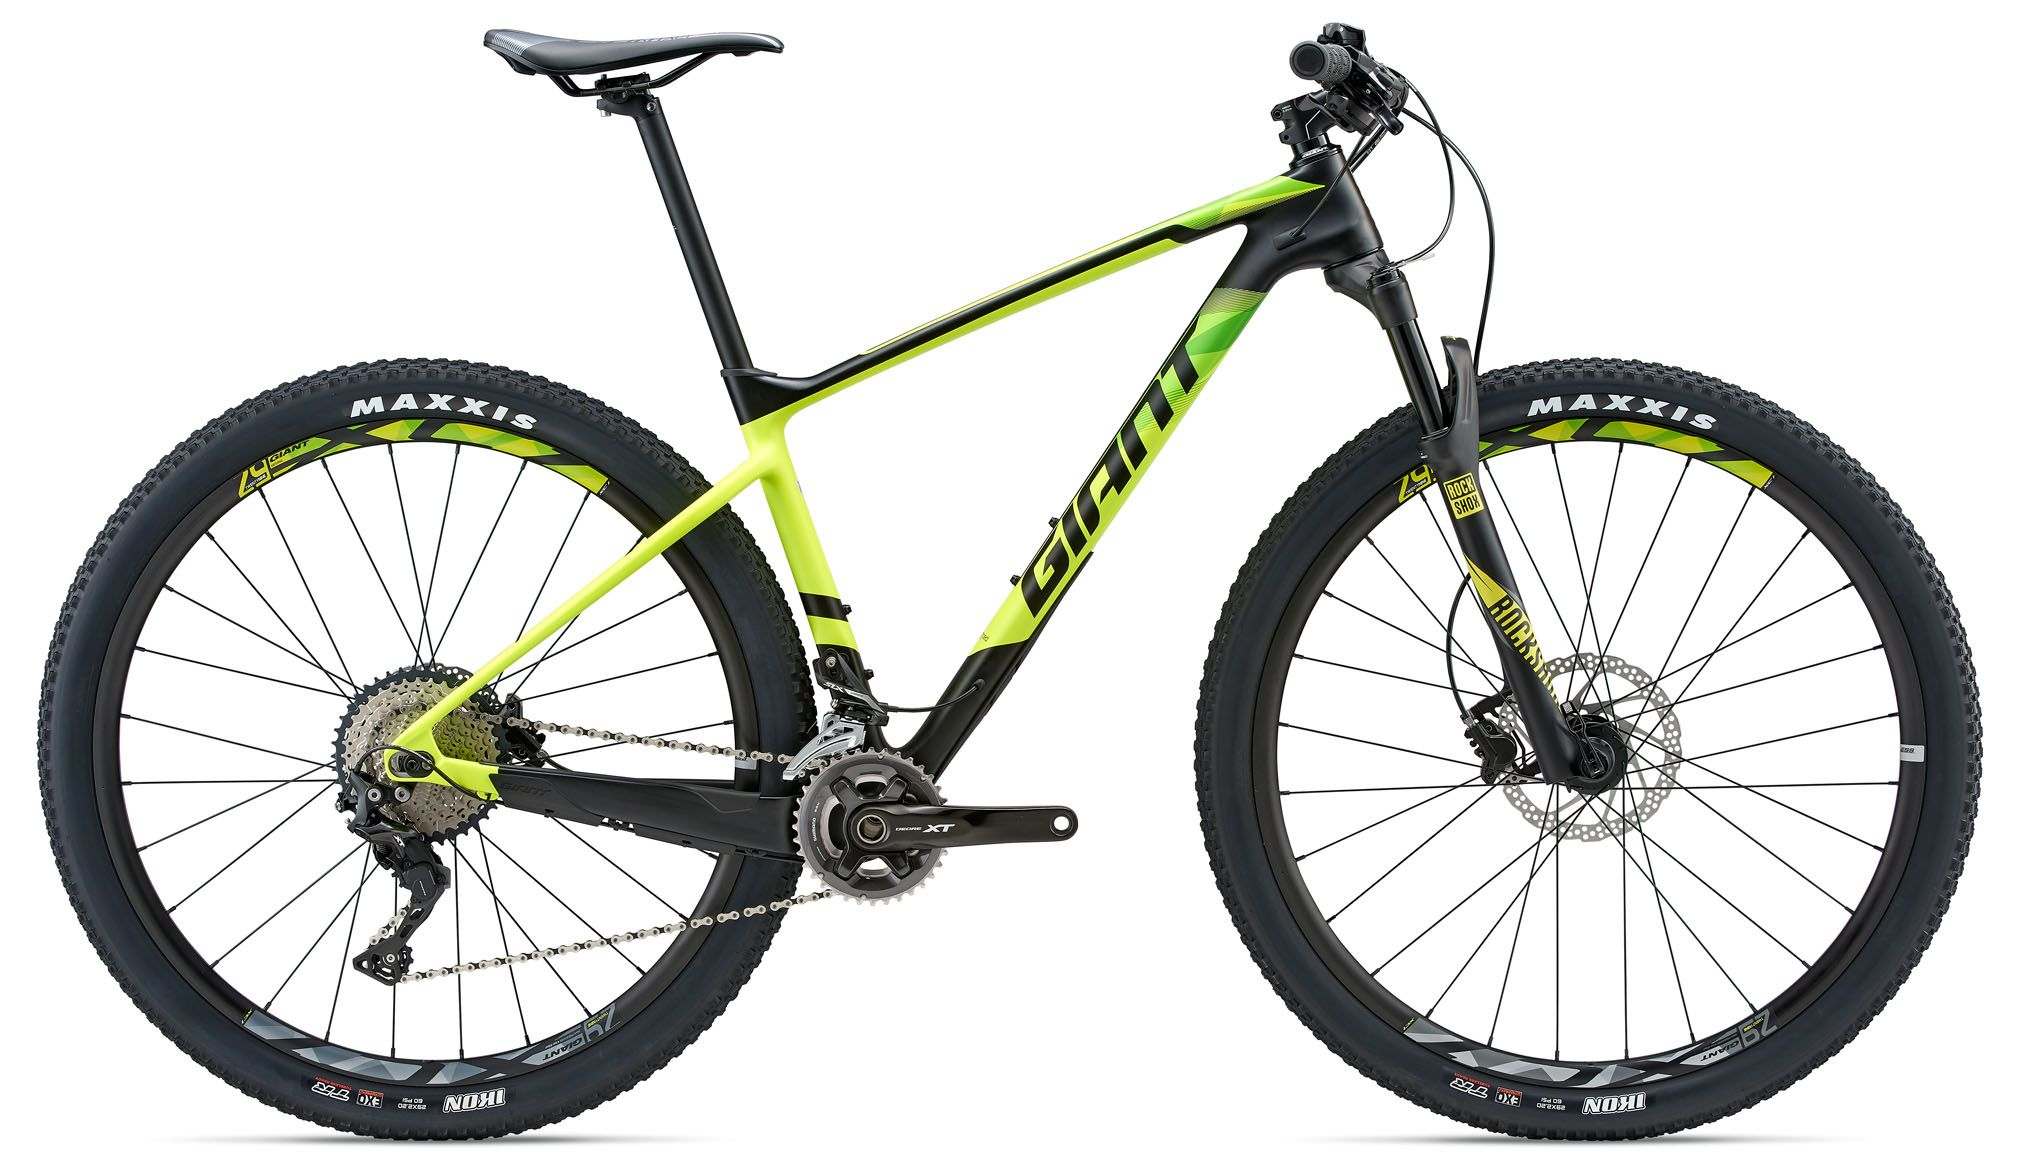 Велосипед Giant XTC Advanced 29er 2 GE 2018 велосипед giant tcr composite 2 compact 2014